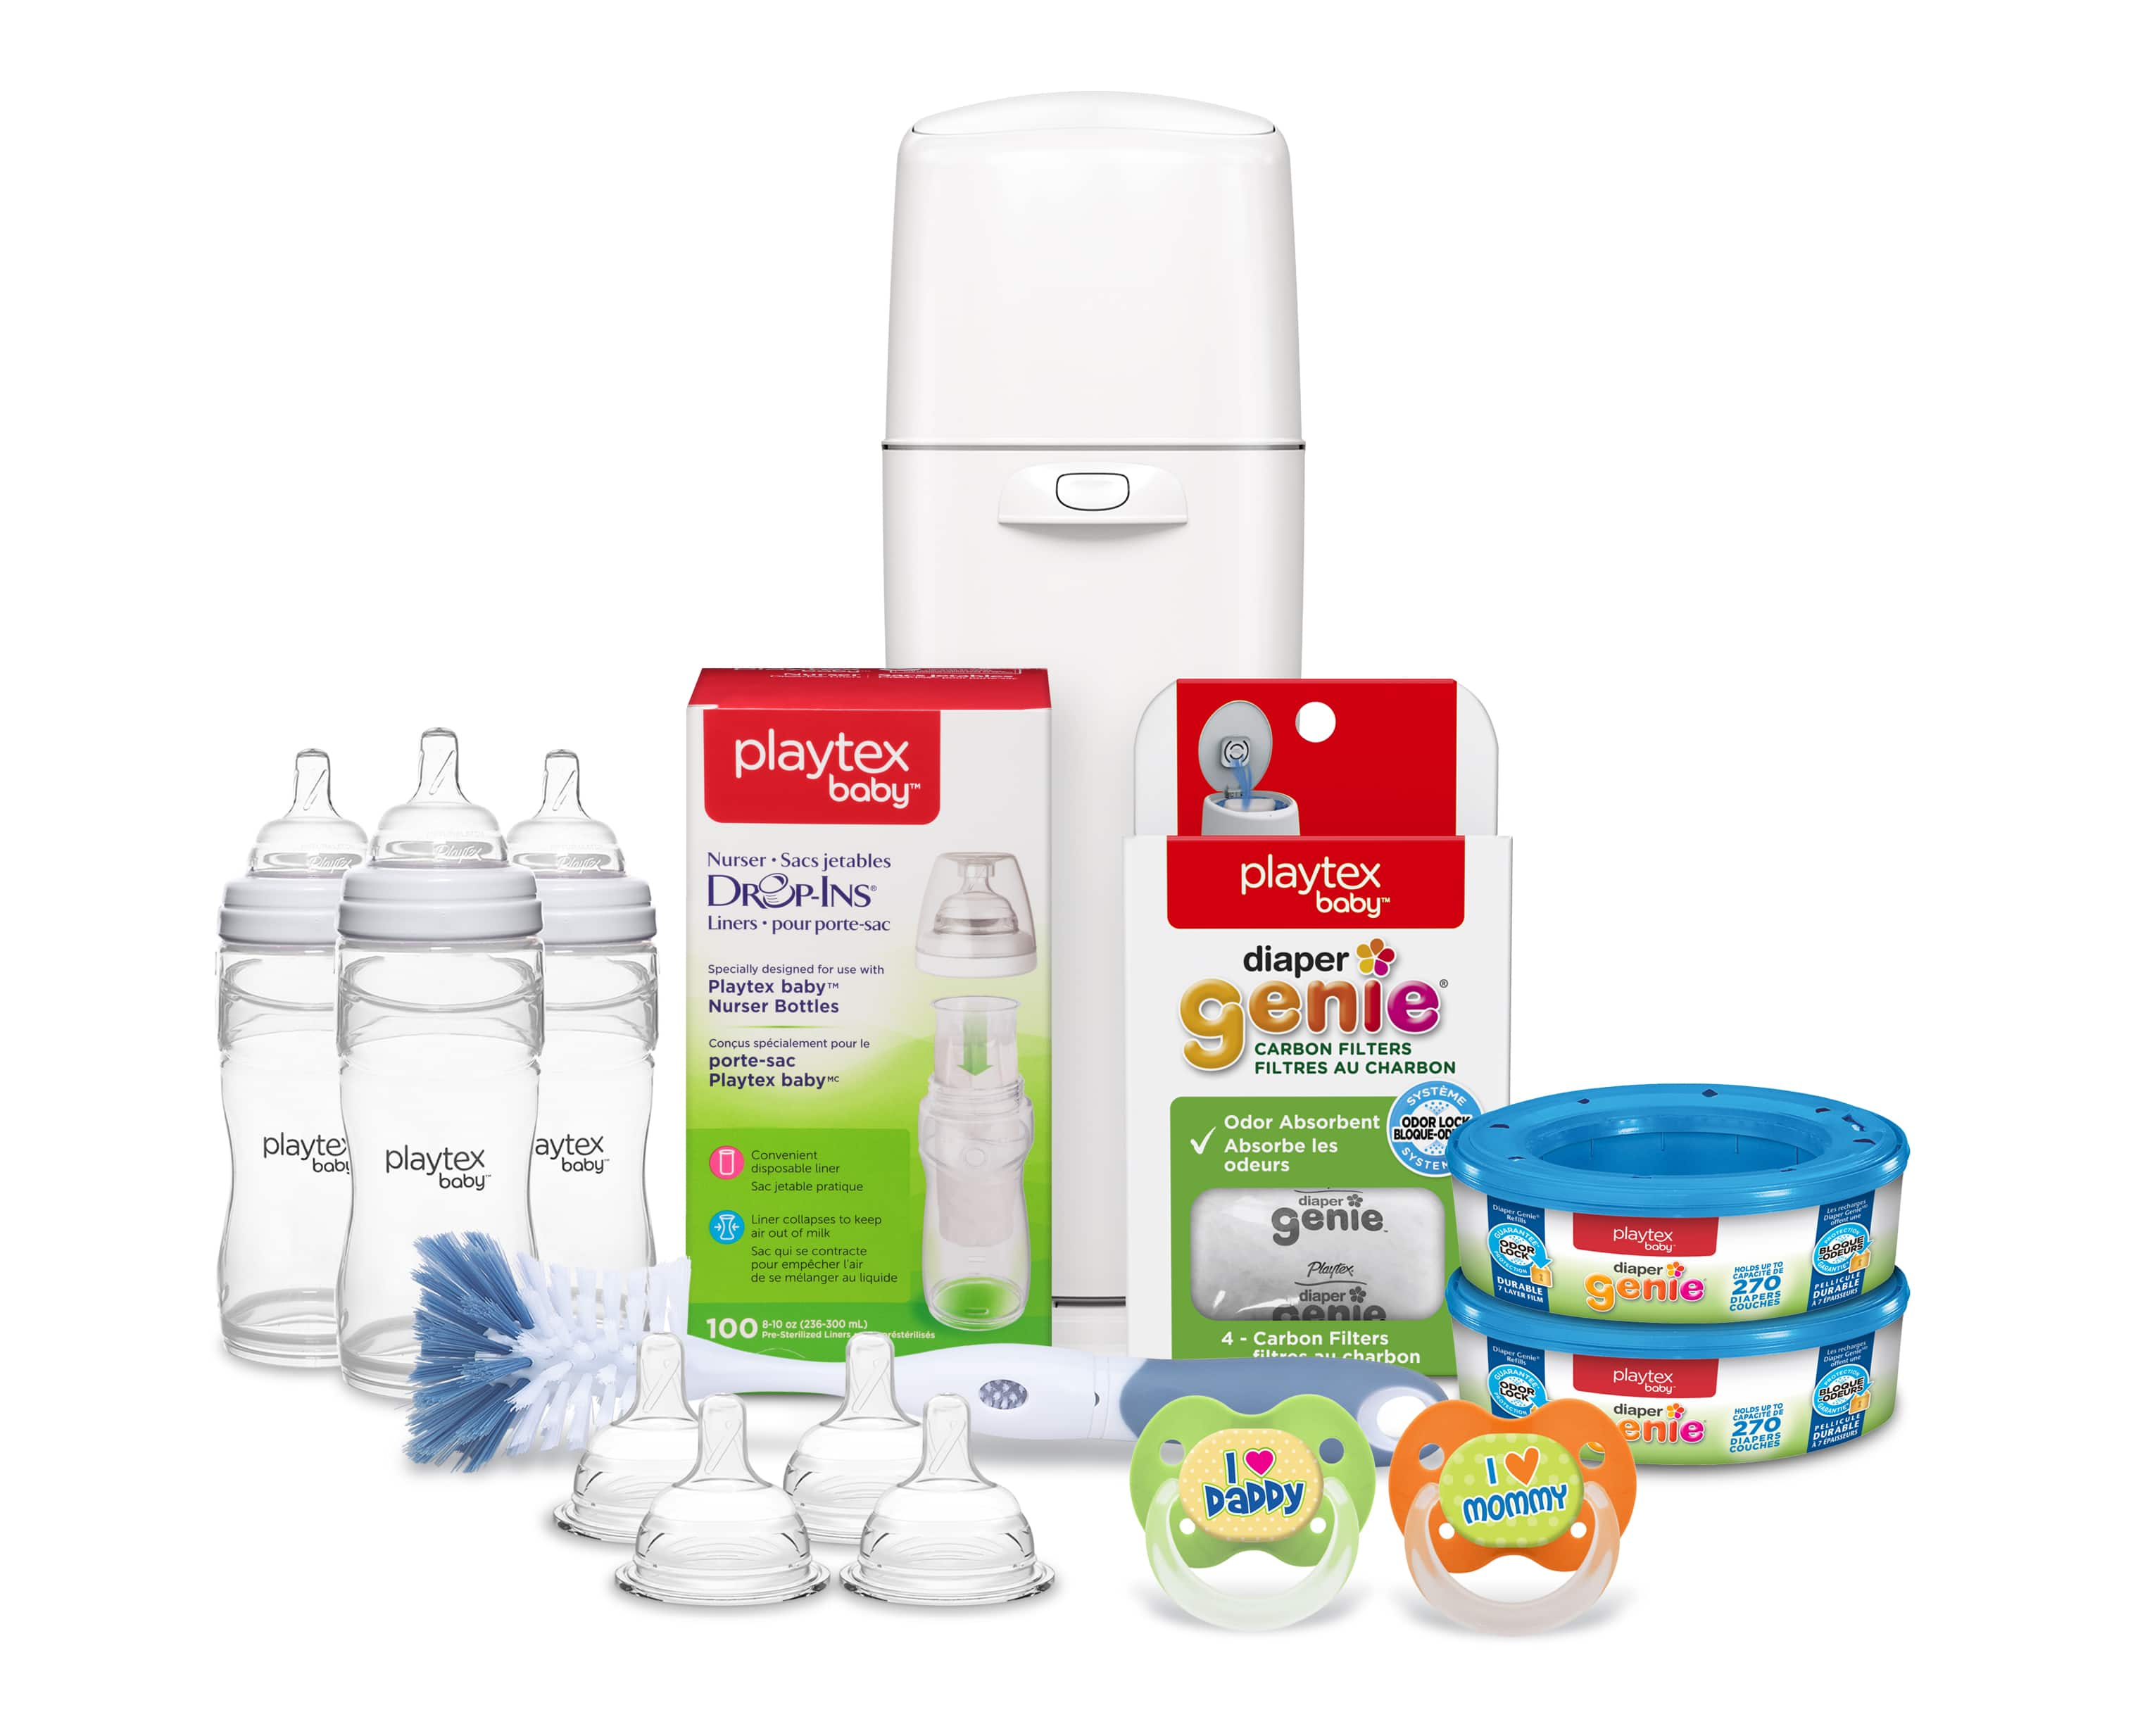 $5 Off Coupon for Playtex Baby Gift Registry Set at Amazon! $69.99